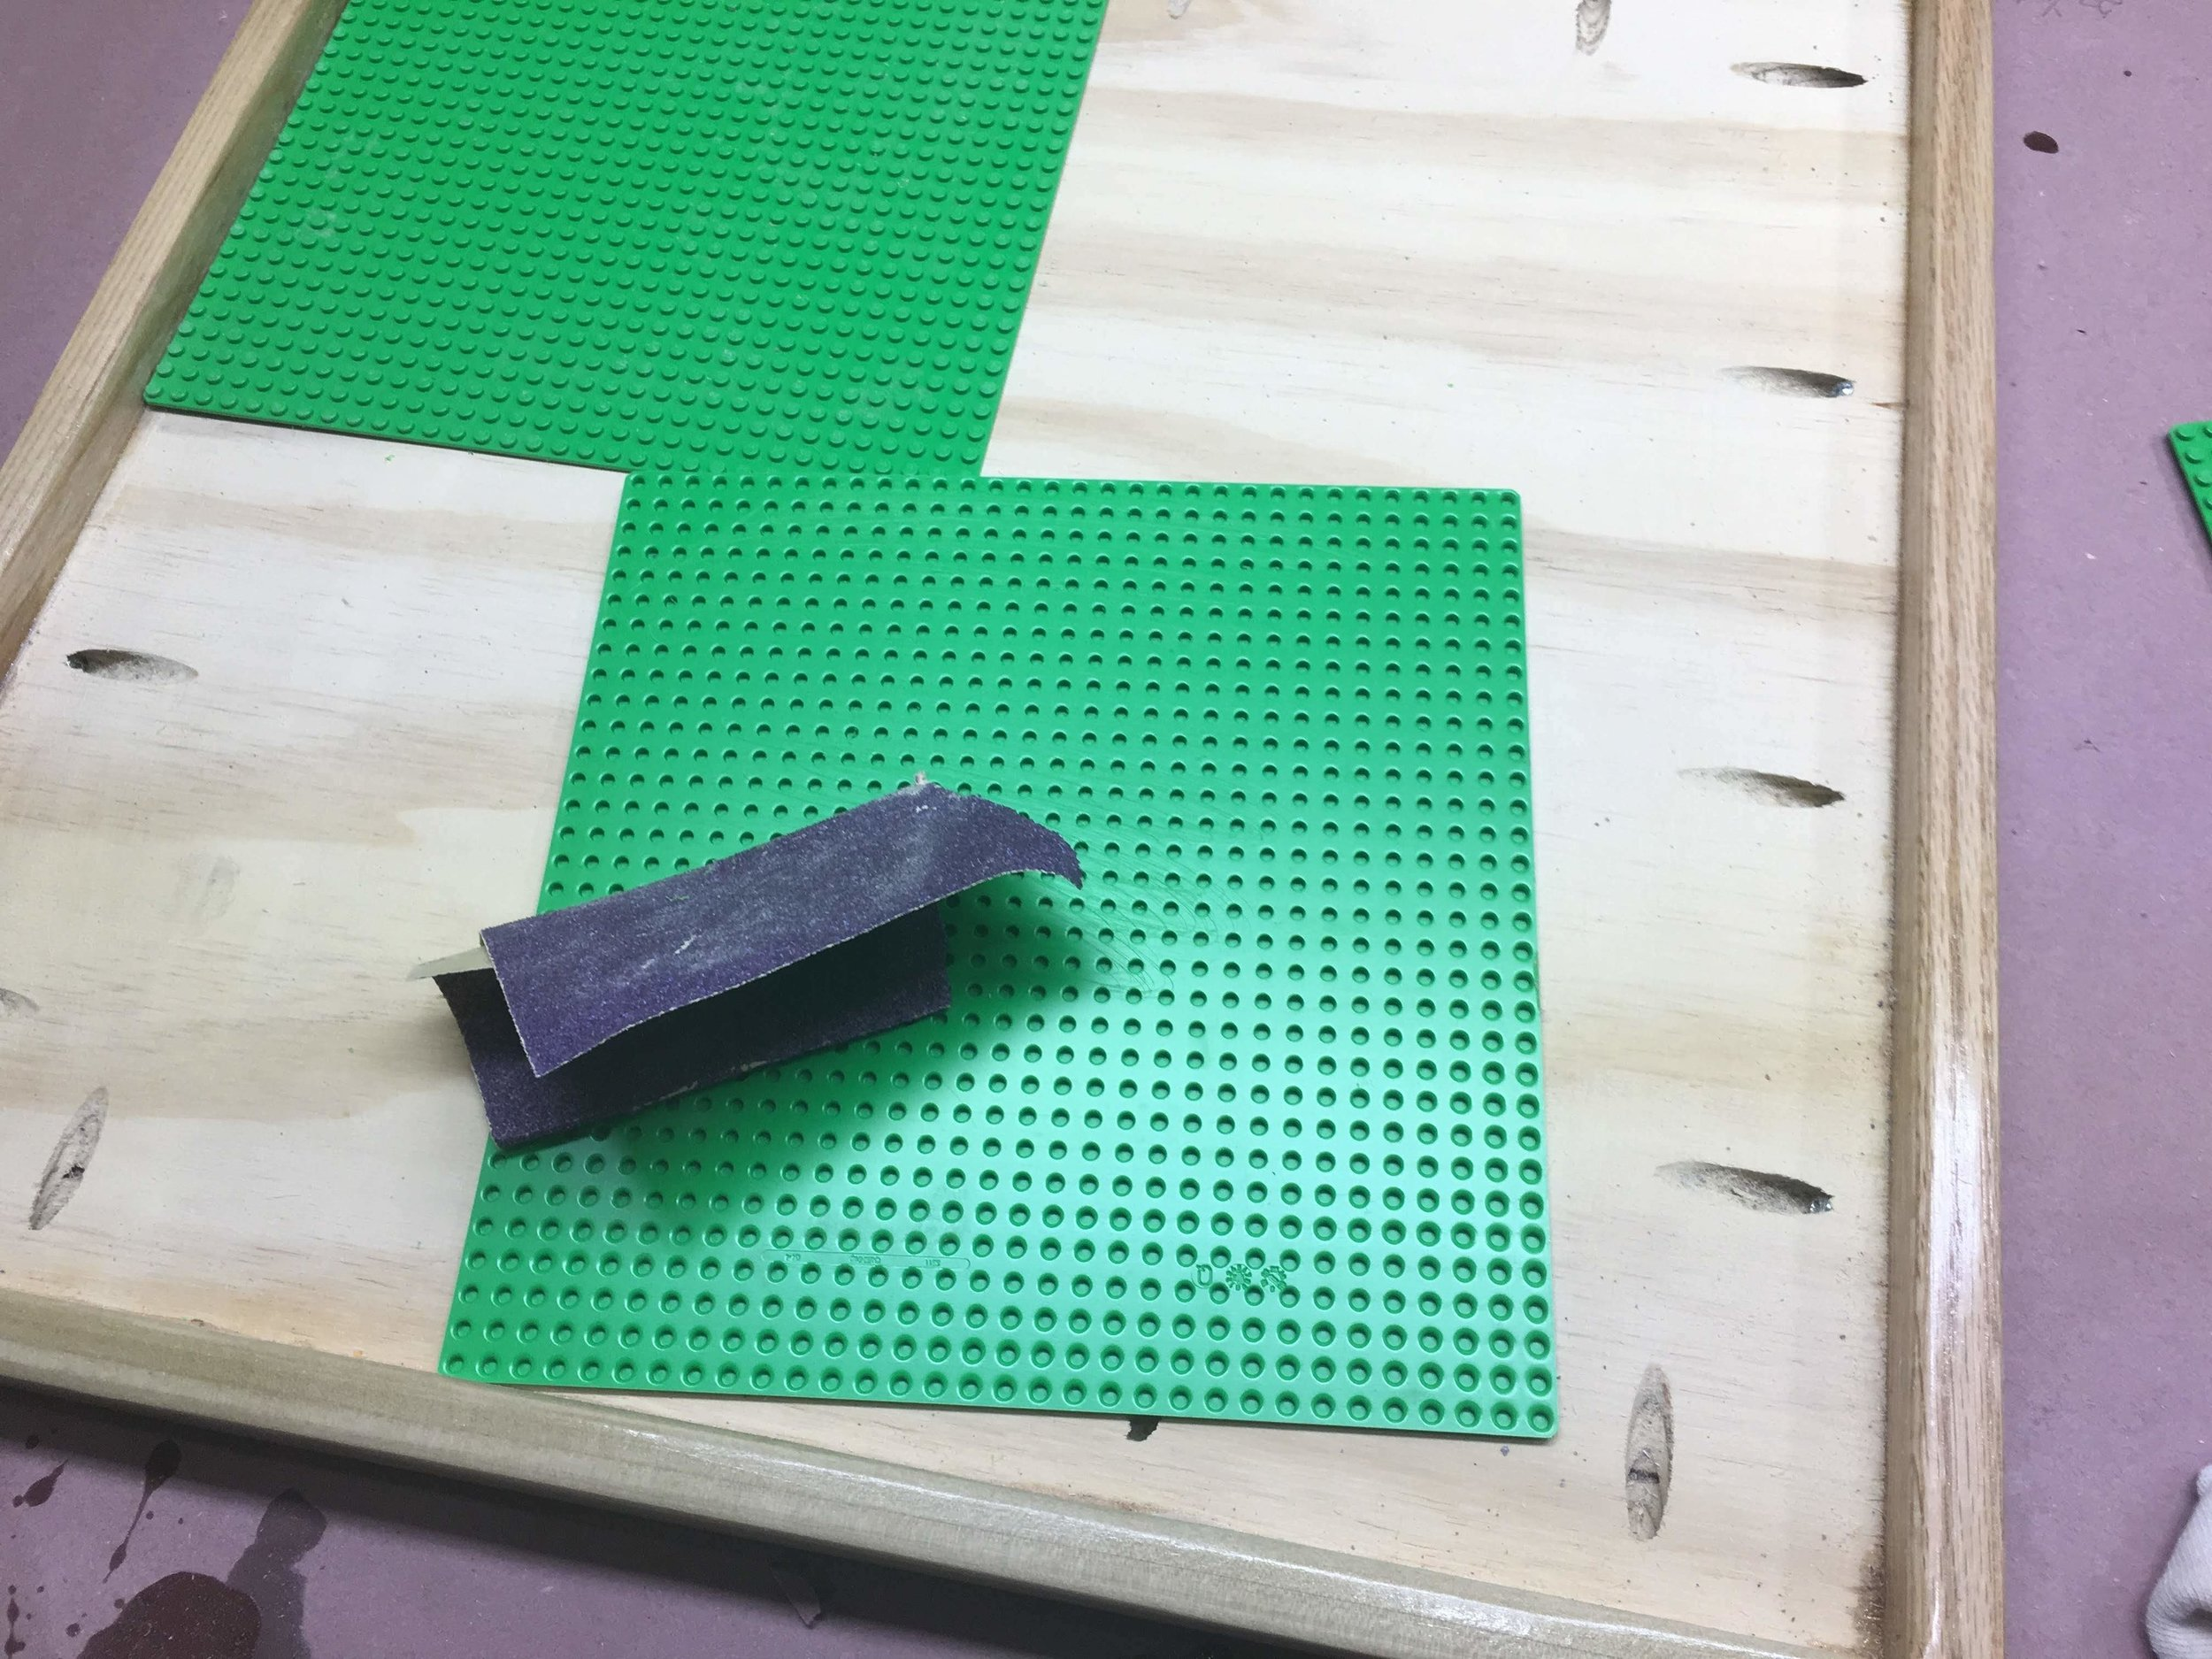 Here is me using the 60 grit sand paper to rough up the bottom of the Lego bases plates